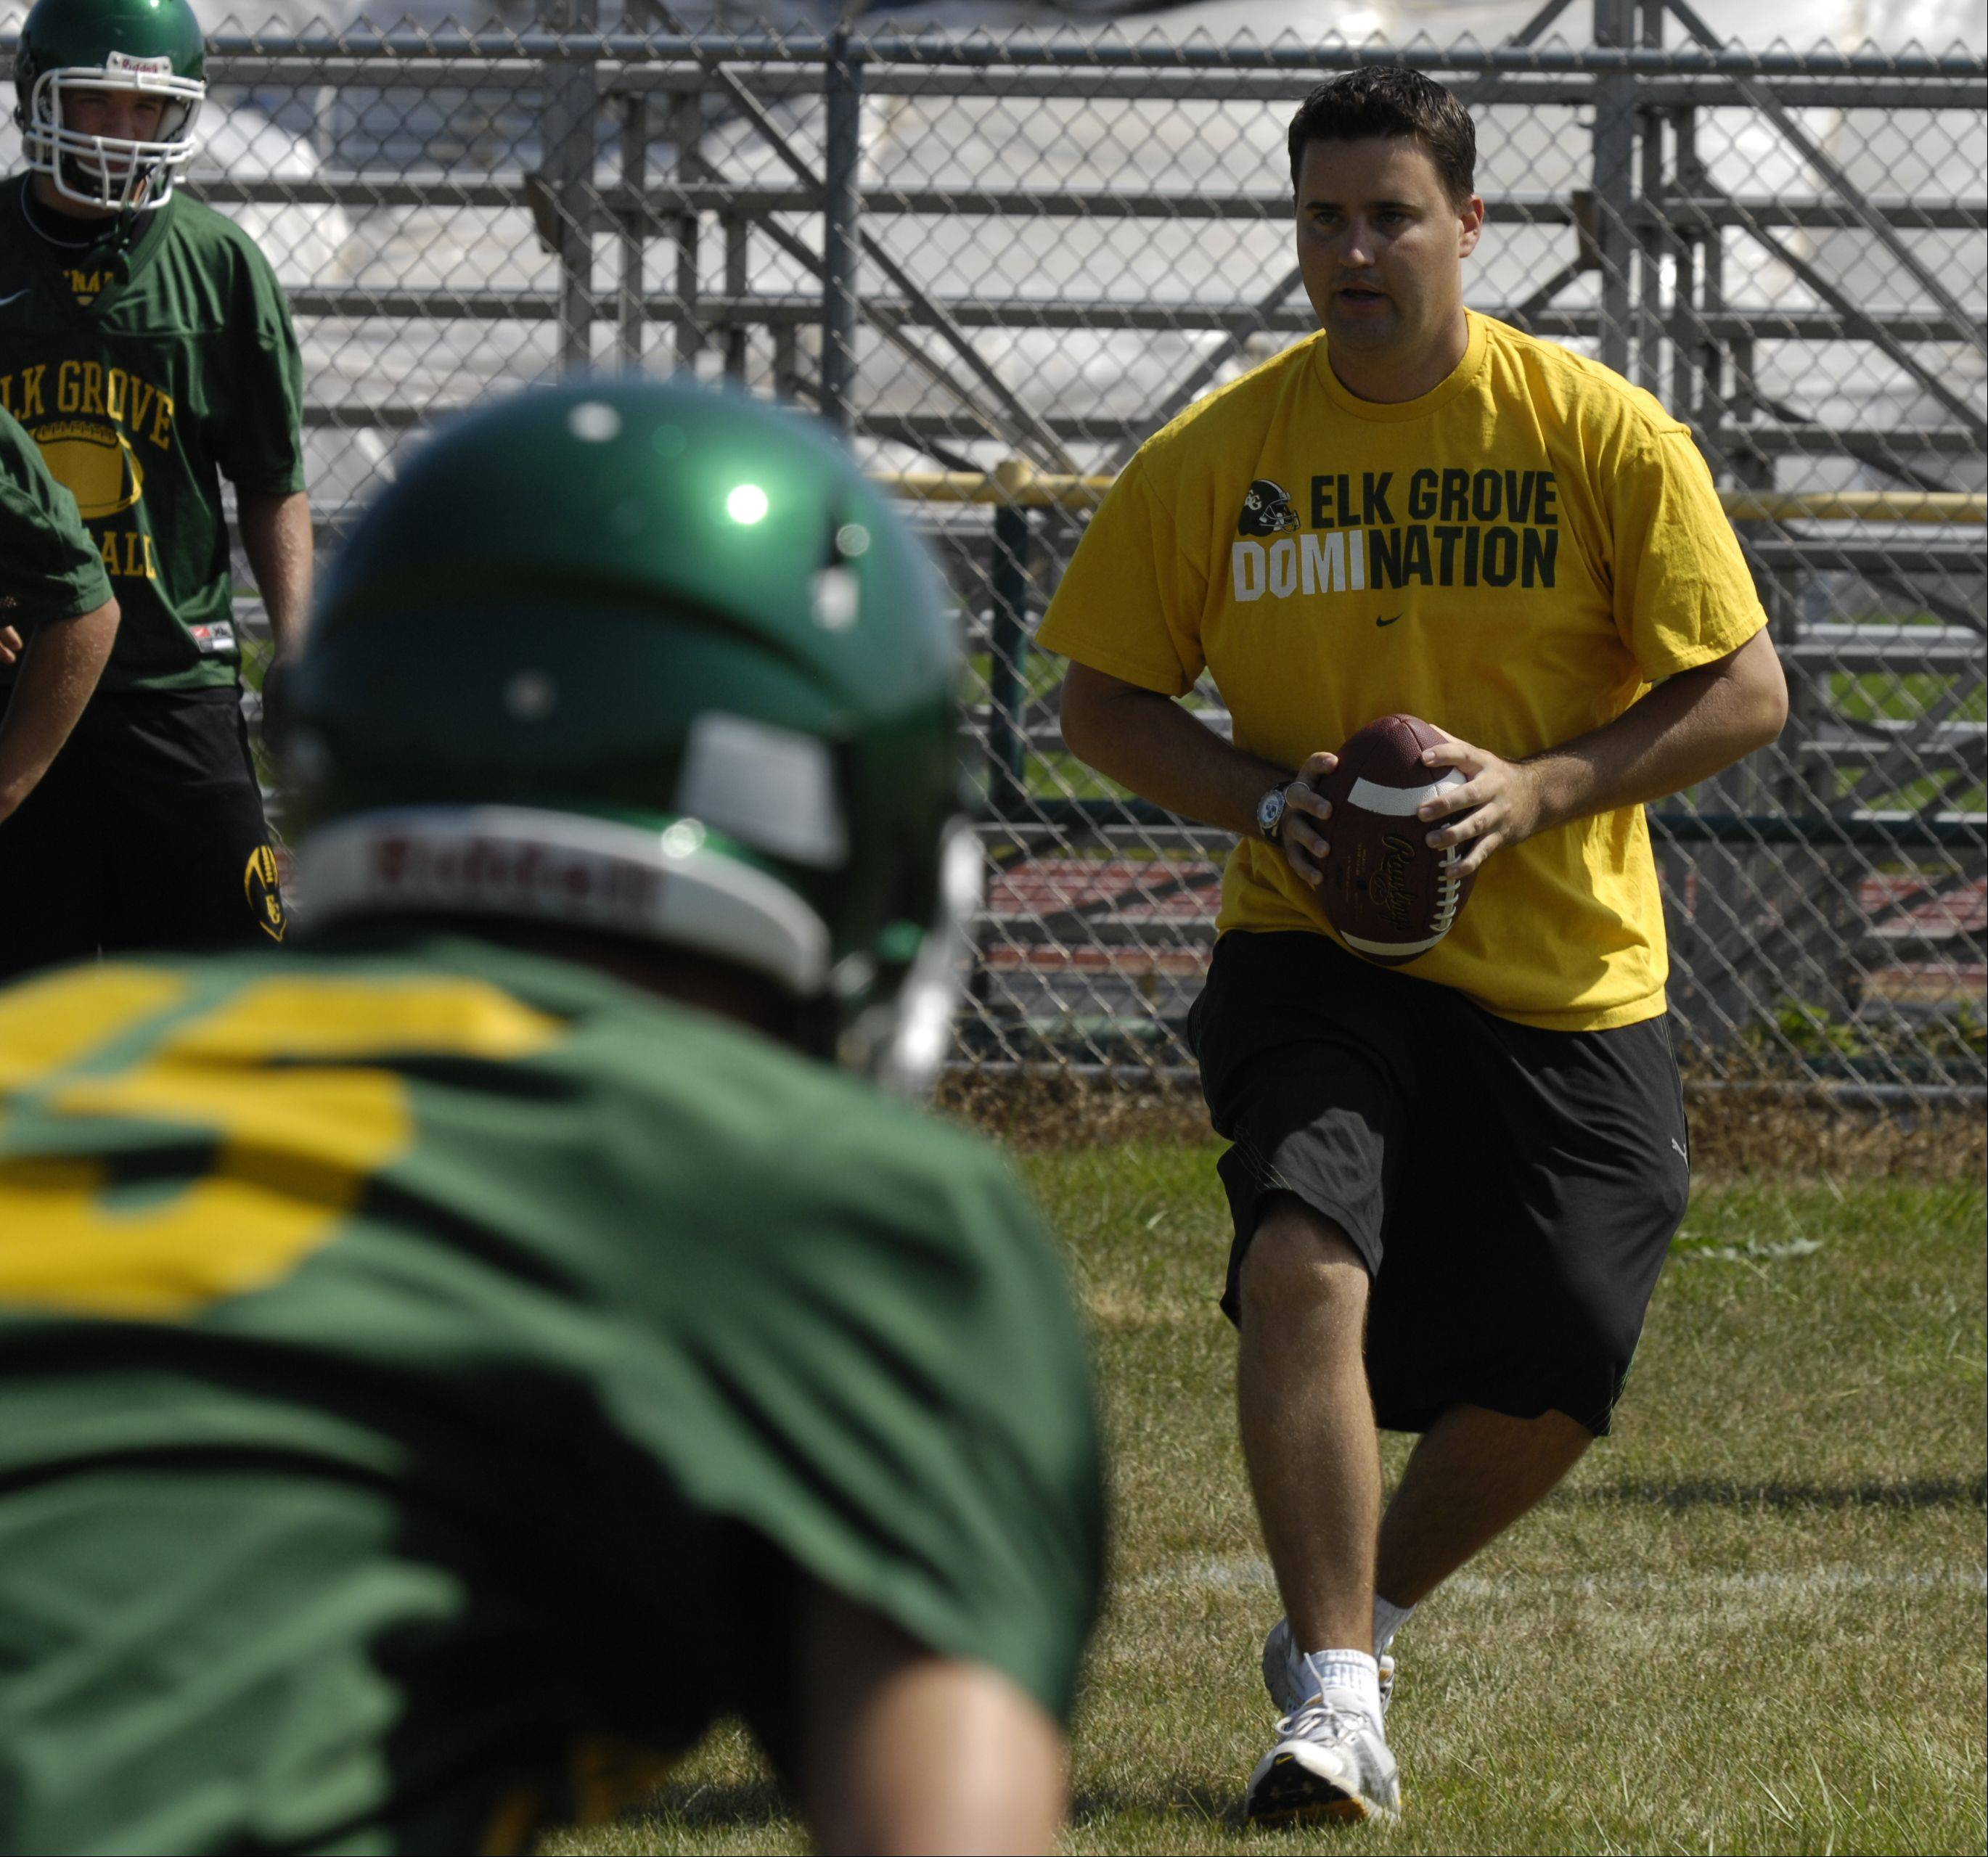 Brian Doll turned Elk Grove into one of the premier football programs in his three years as head coach. Now Doll will turn his attention to trying to help football grow and prosper in a new position in London.